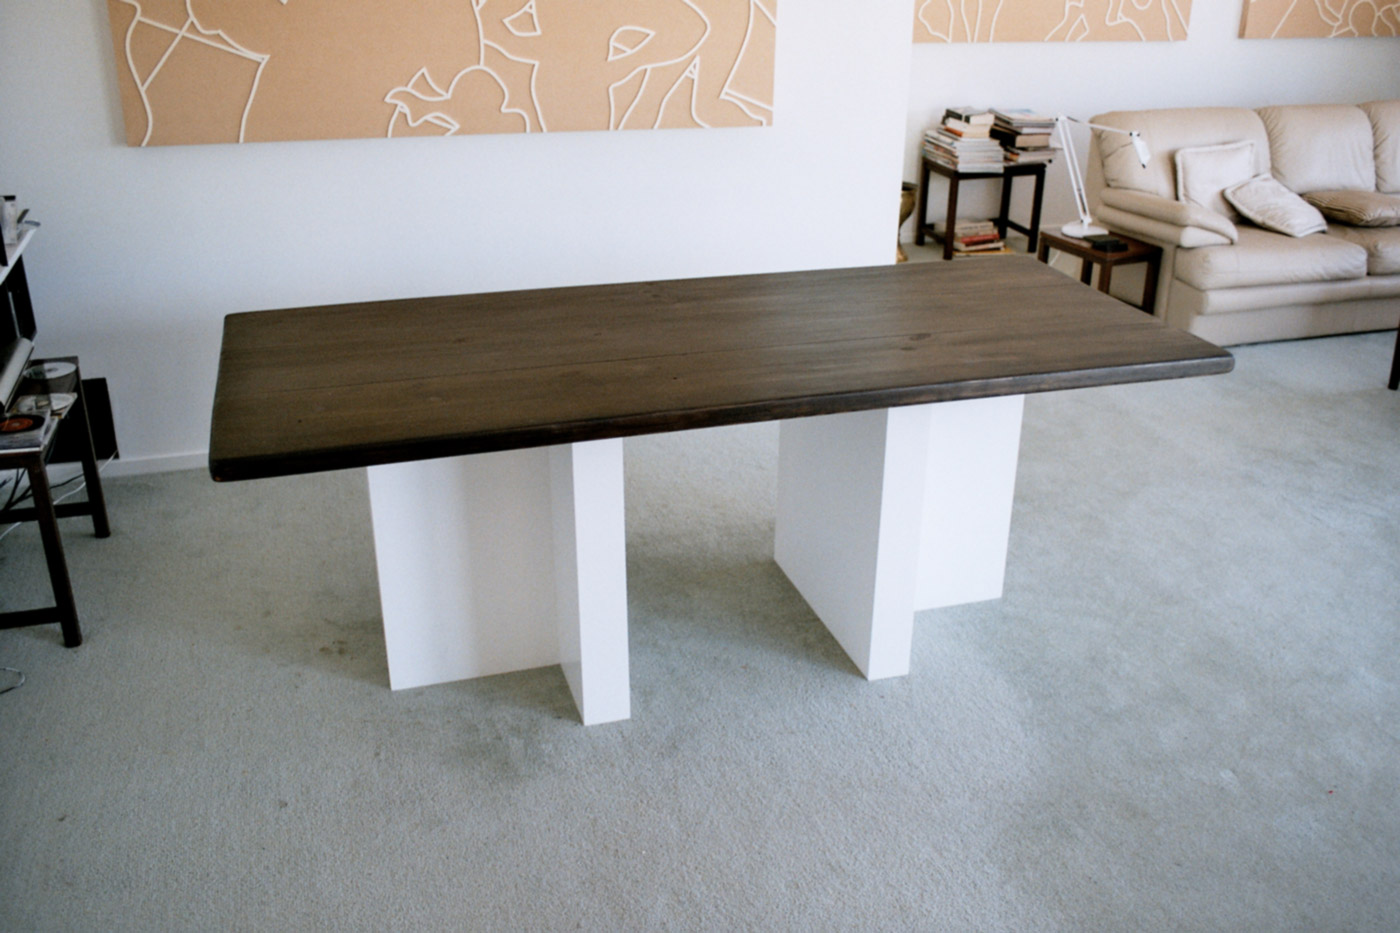 TABLE @ 2003, burned pine wood, plywood, 200 x 100 x 75 cm